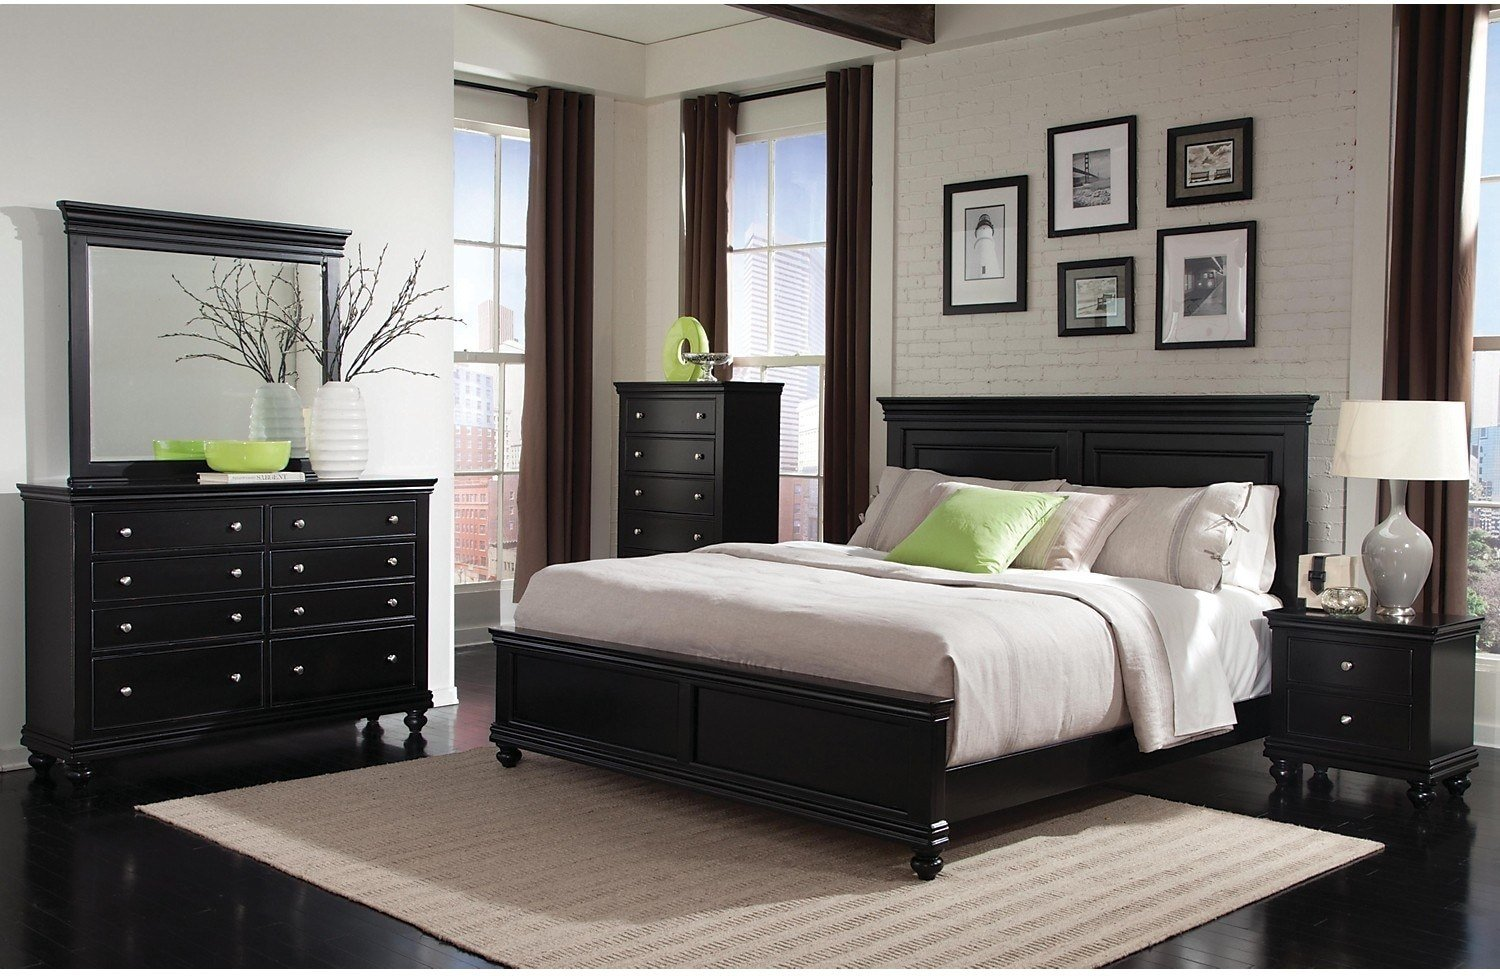 Best Bridgeport 5 Piece Queen Bedroom Set – Black The Brick With Pictures